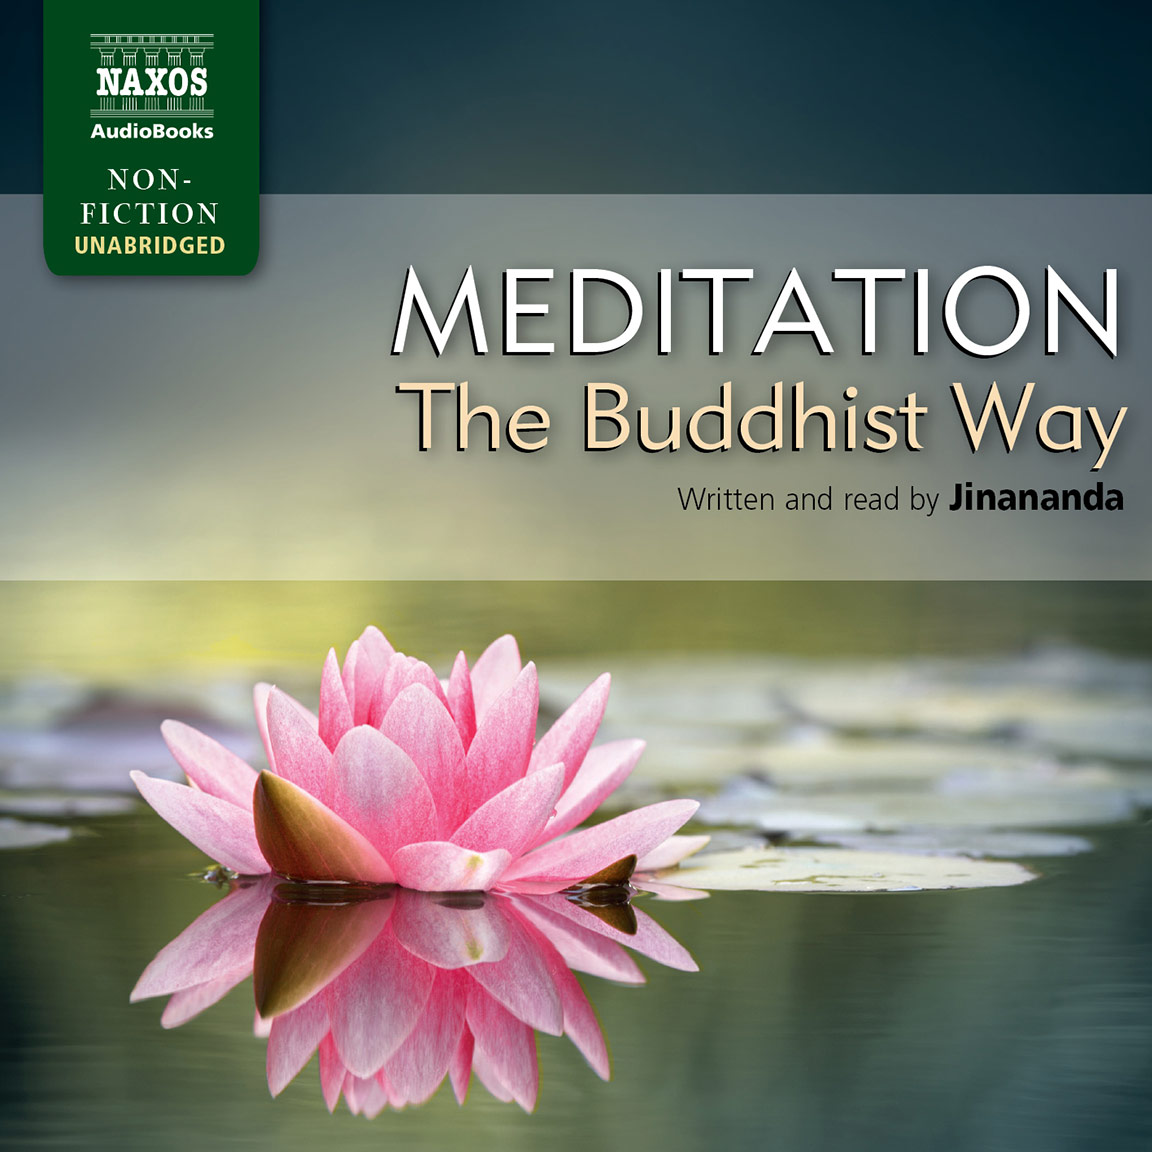 meditation the buddhist way unabridged naxos audiobooks